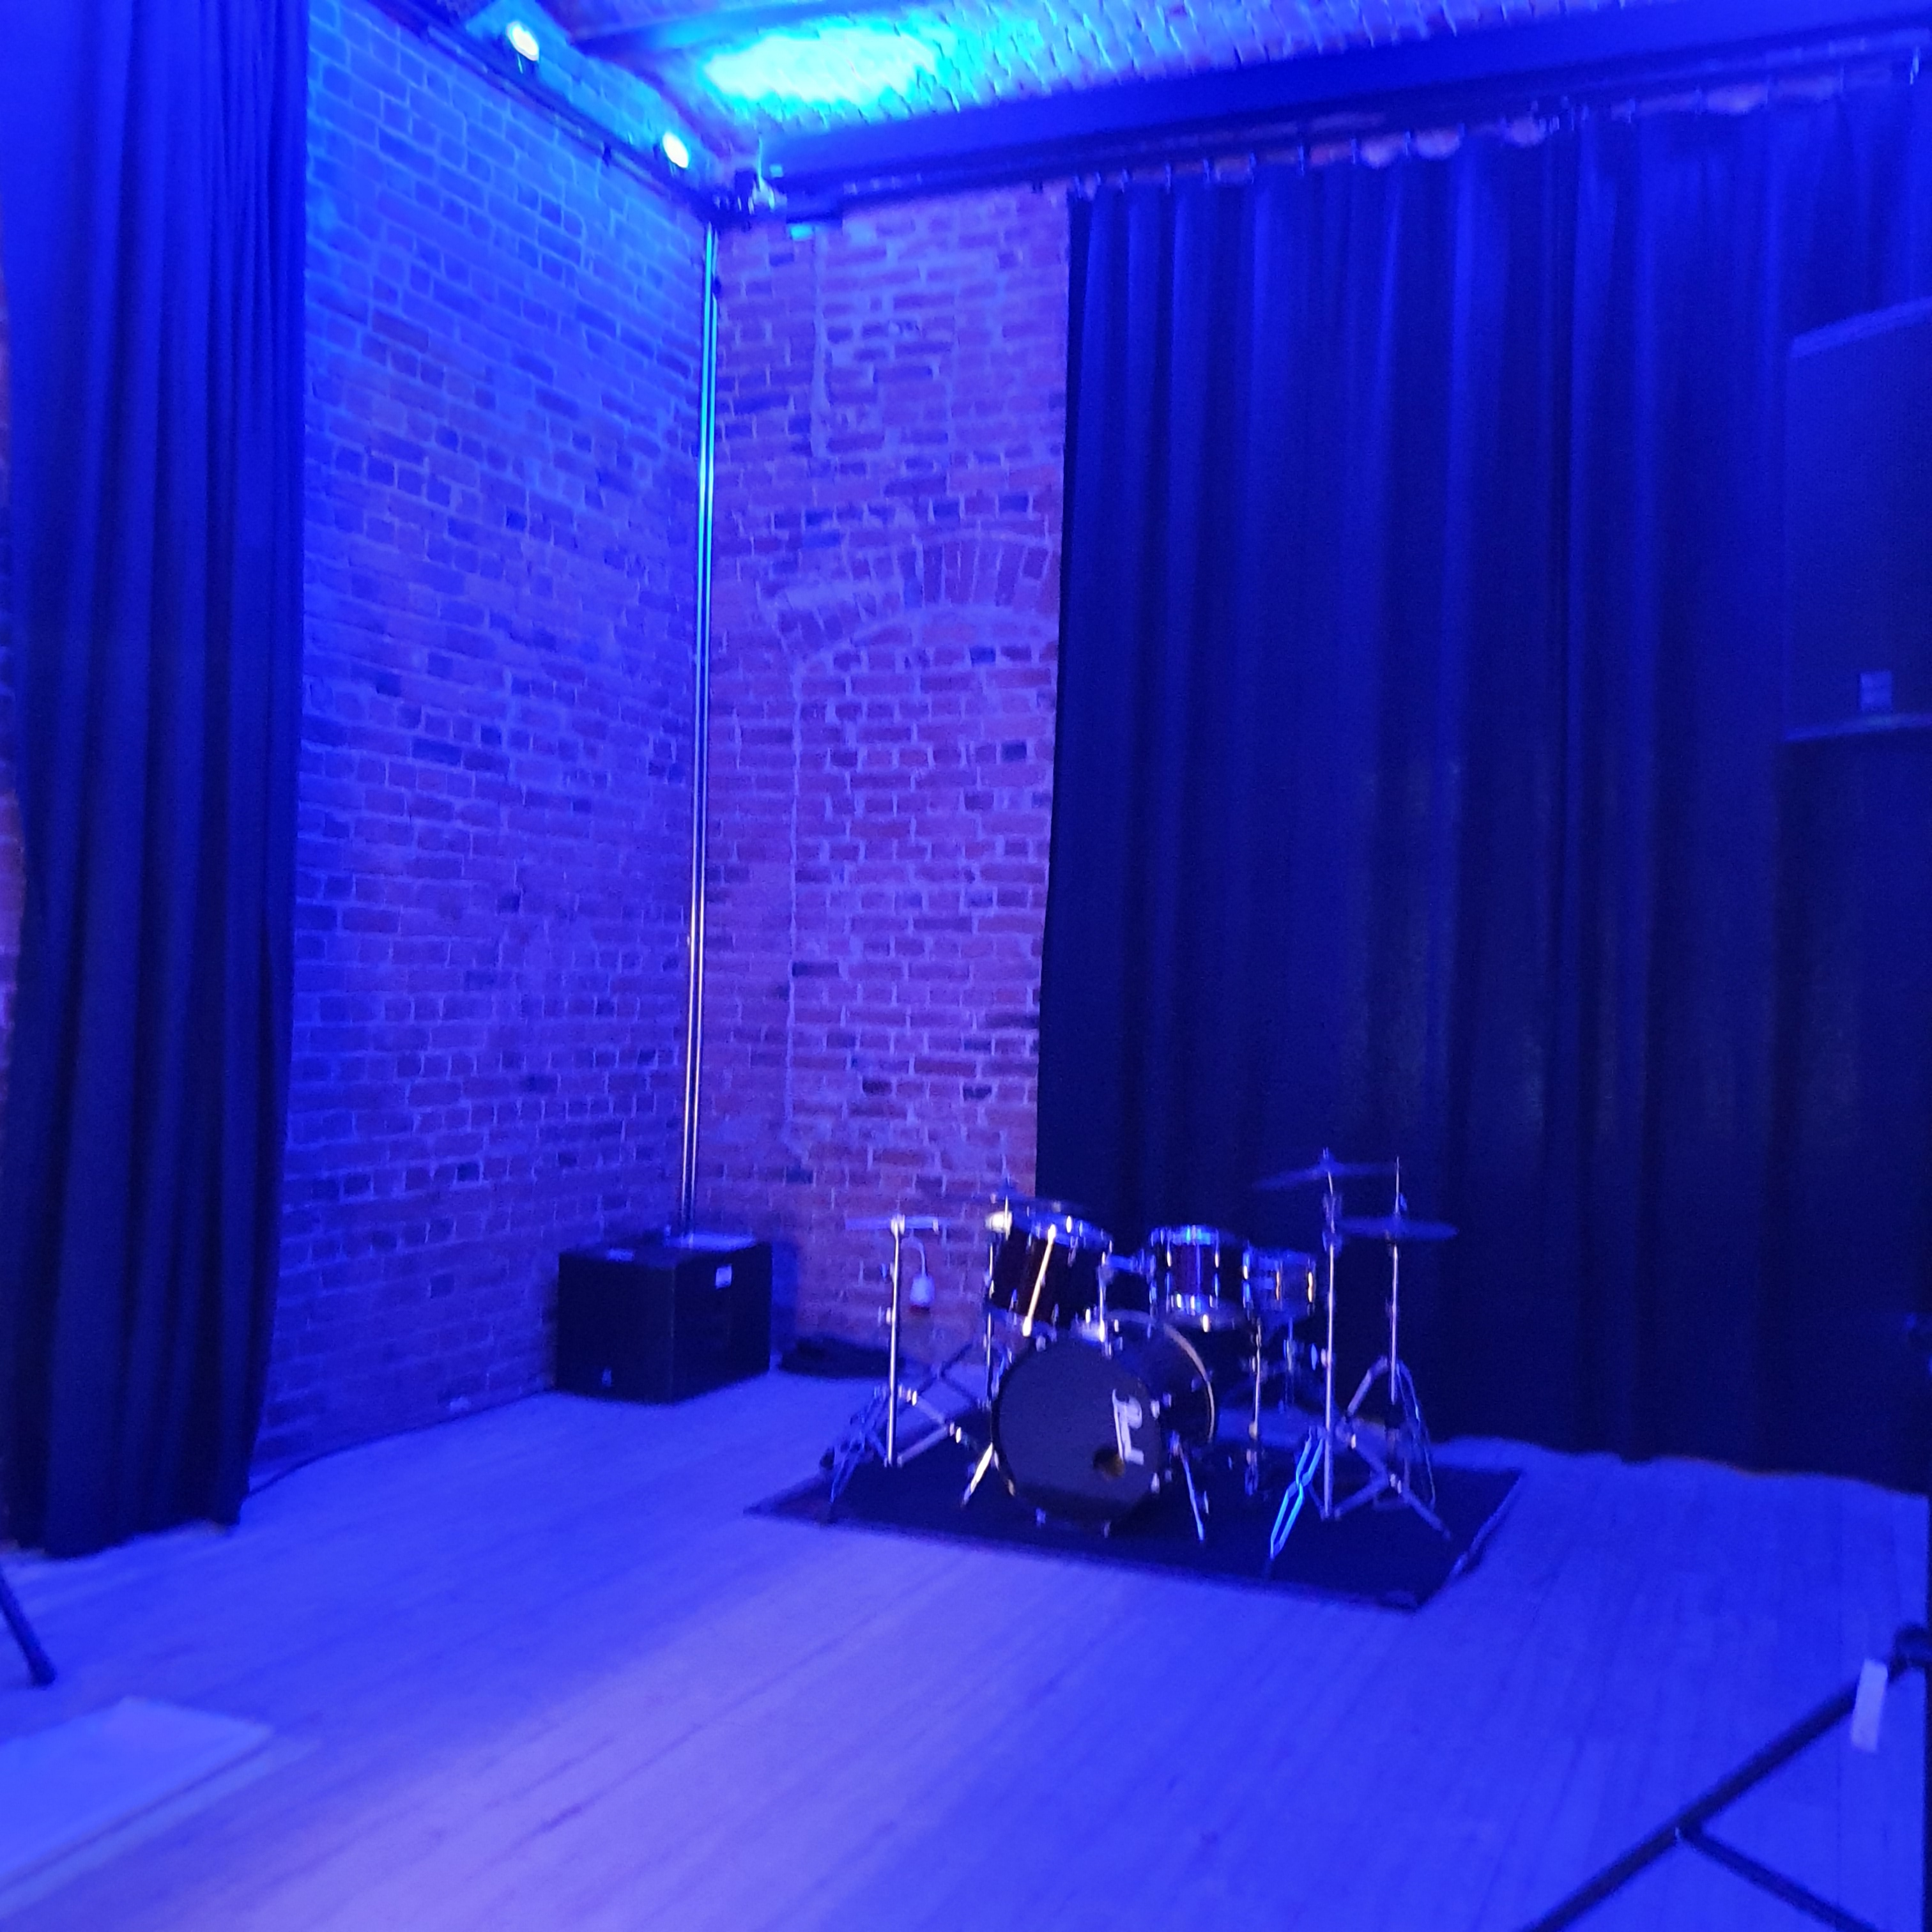 Drum kit set up in front of red brick wall in Kammio bathed in blue light